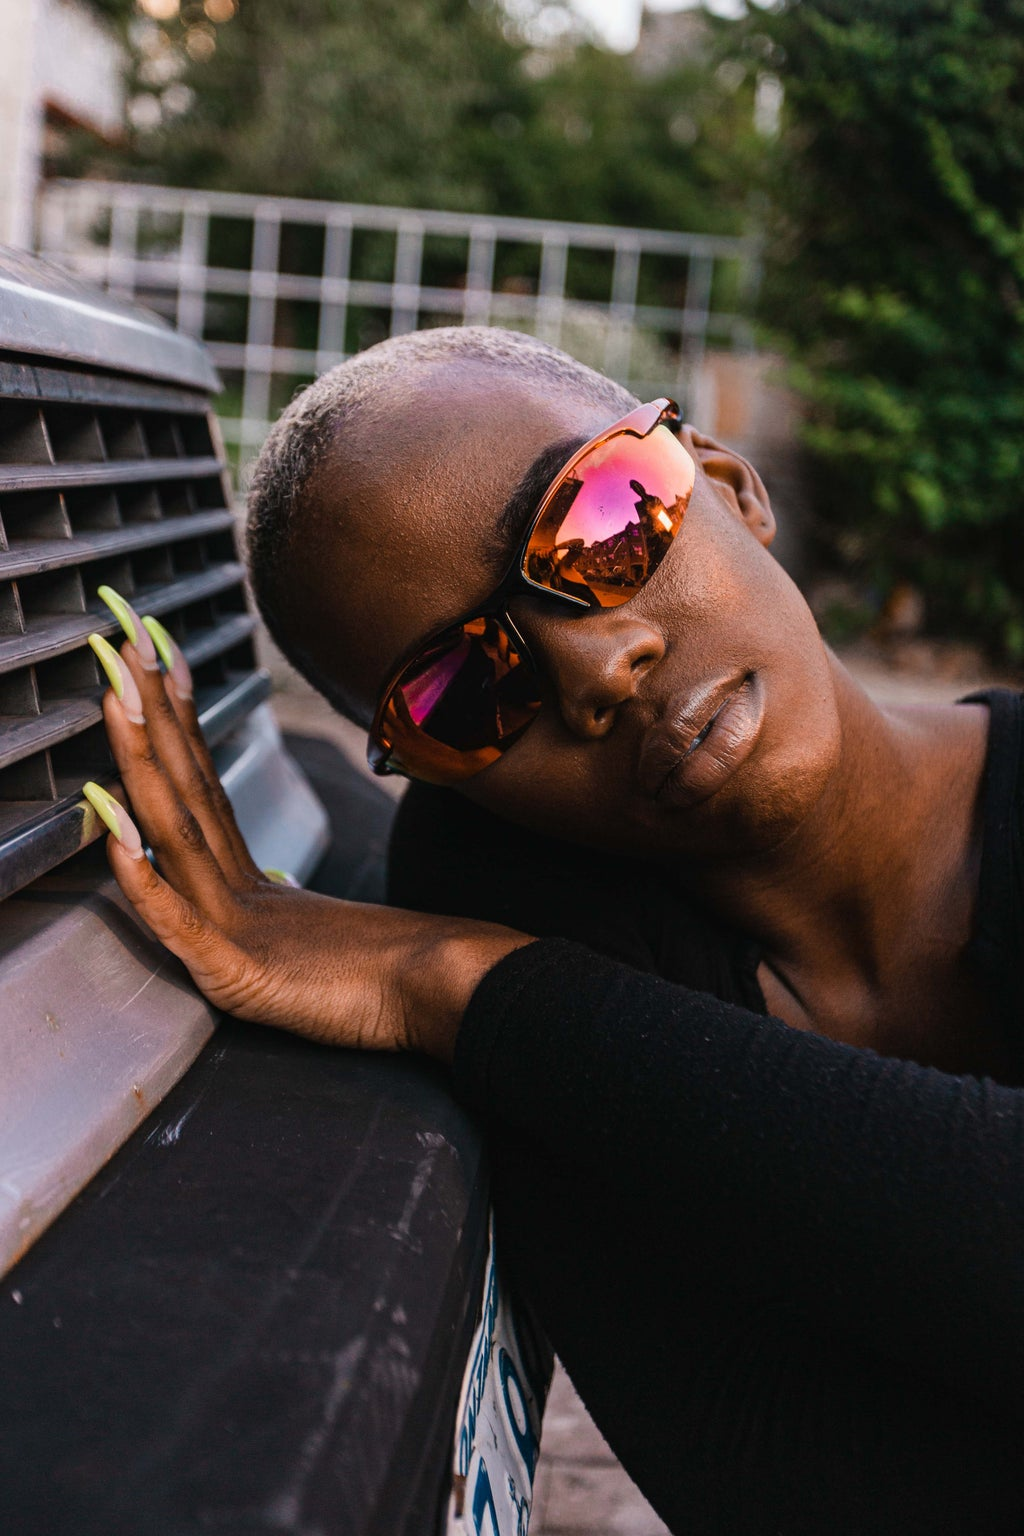 Woman leaning against car wearing sunglasses and acrylic nails